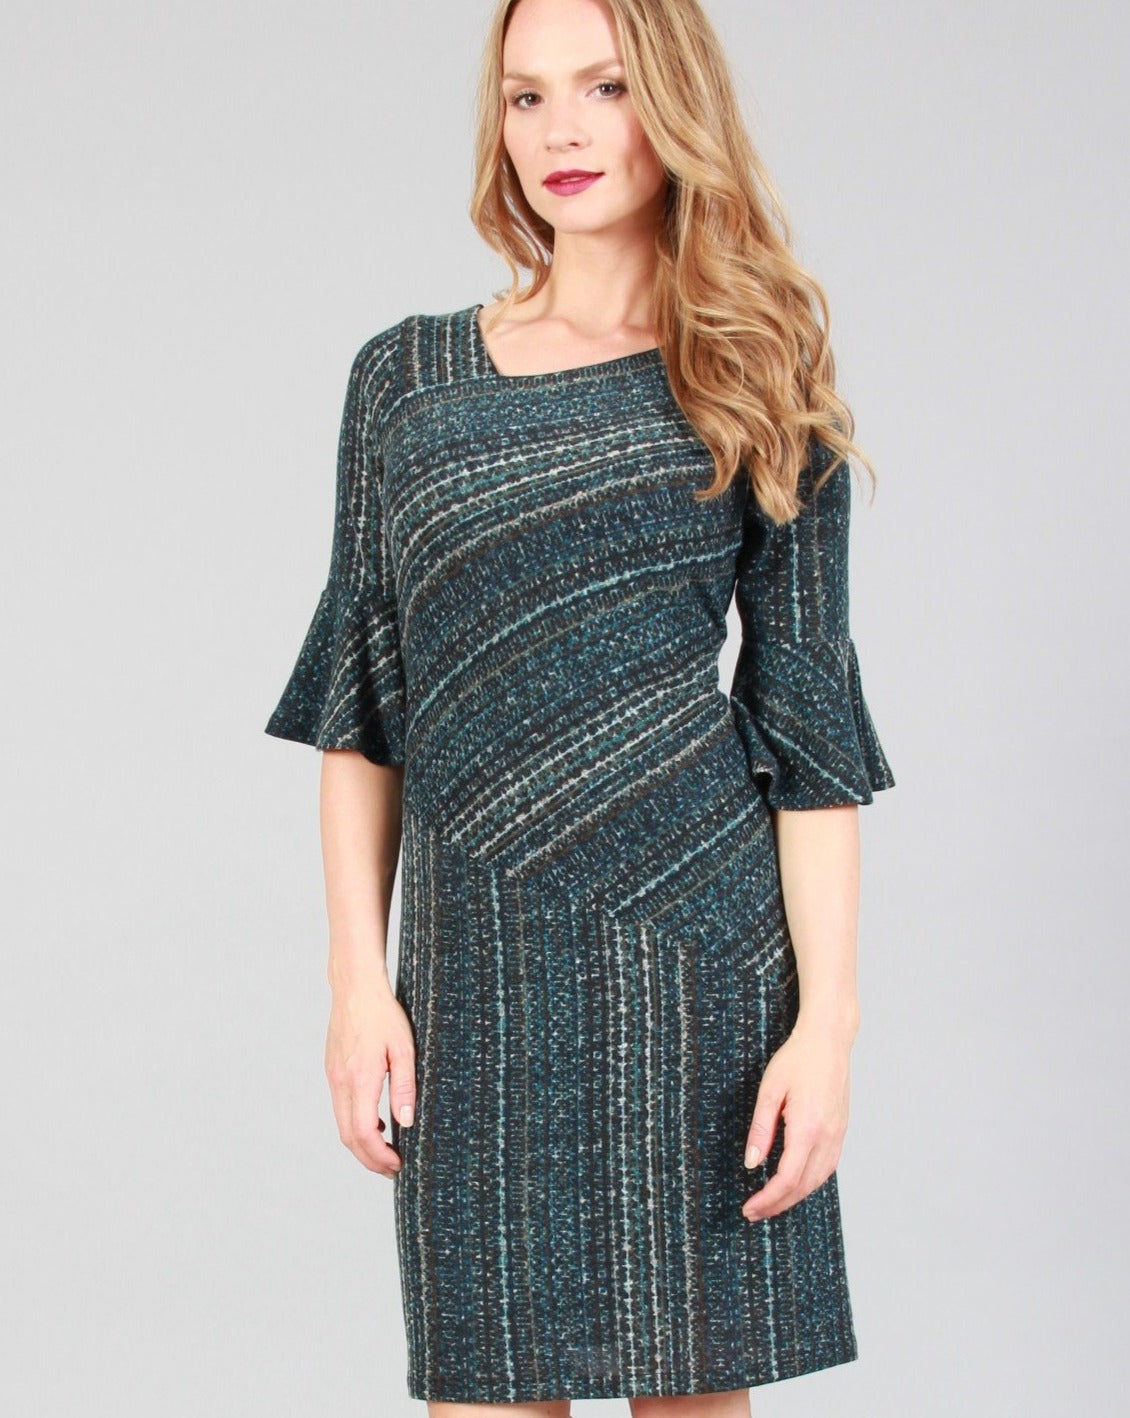 GREENWOOD  Dress